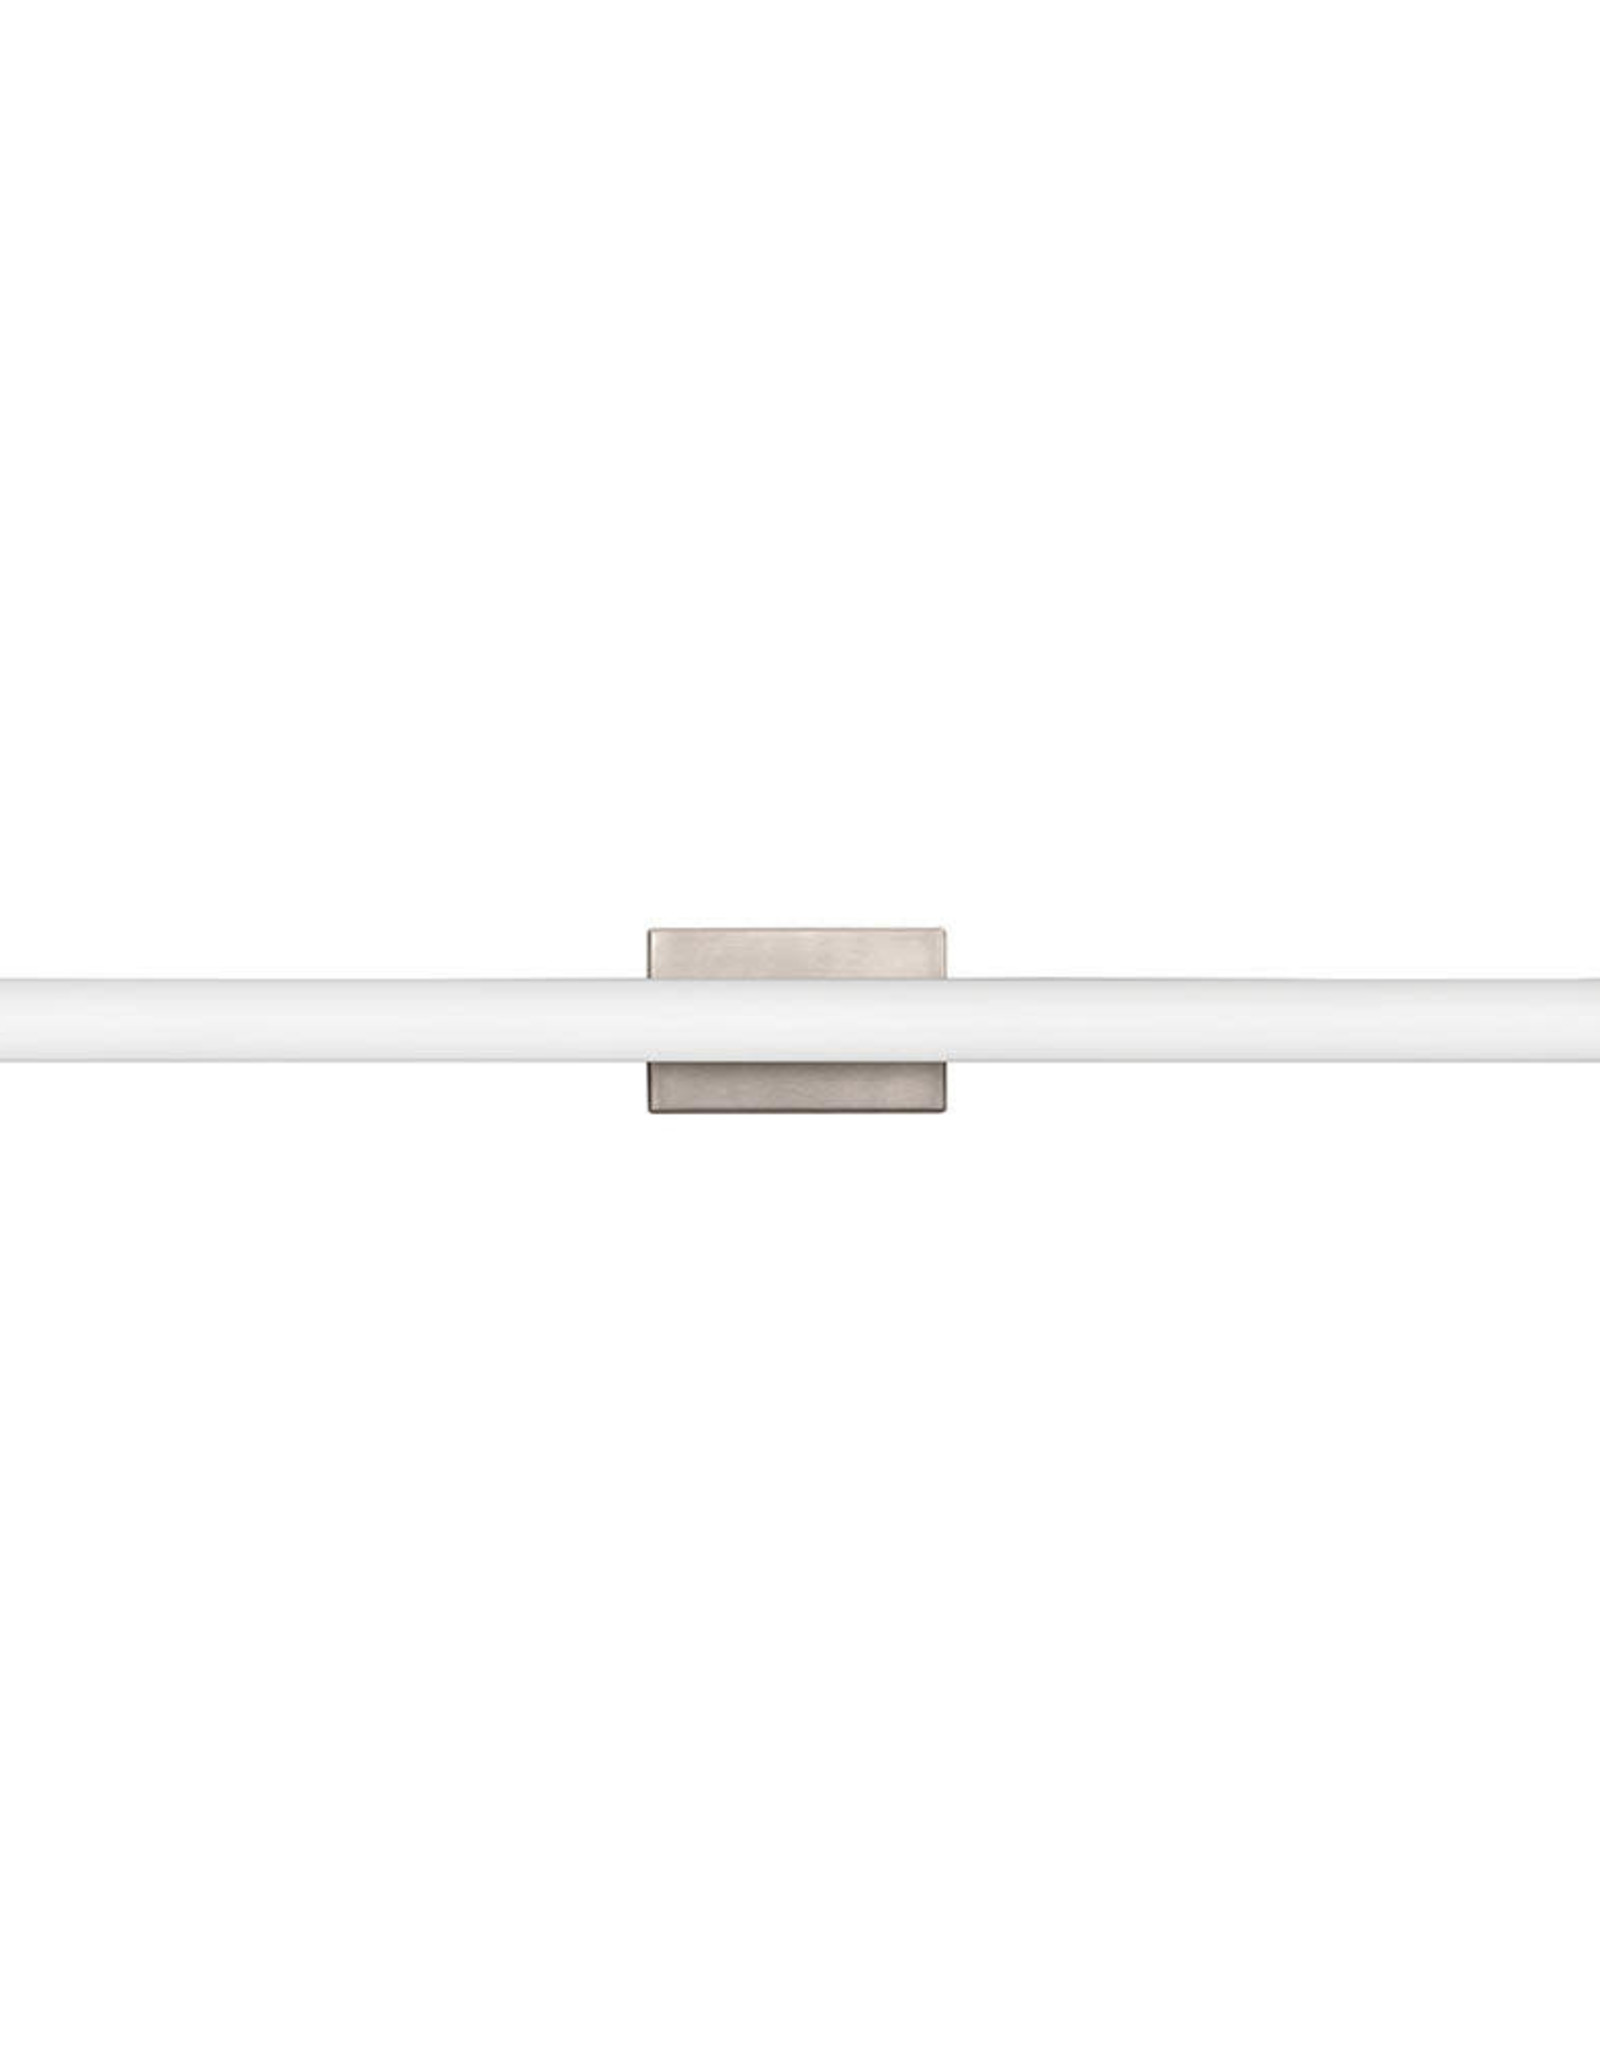 Lithonia Lighting 48 in. Brushed Nickel Integrated LED Vanity Light Bar with Selectable Color Temperature